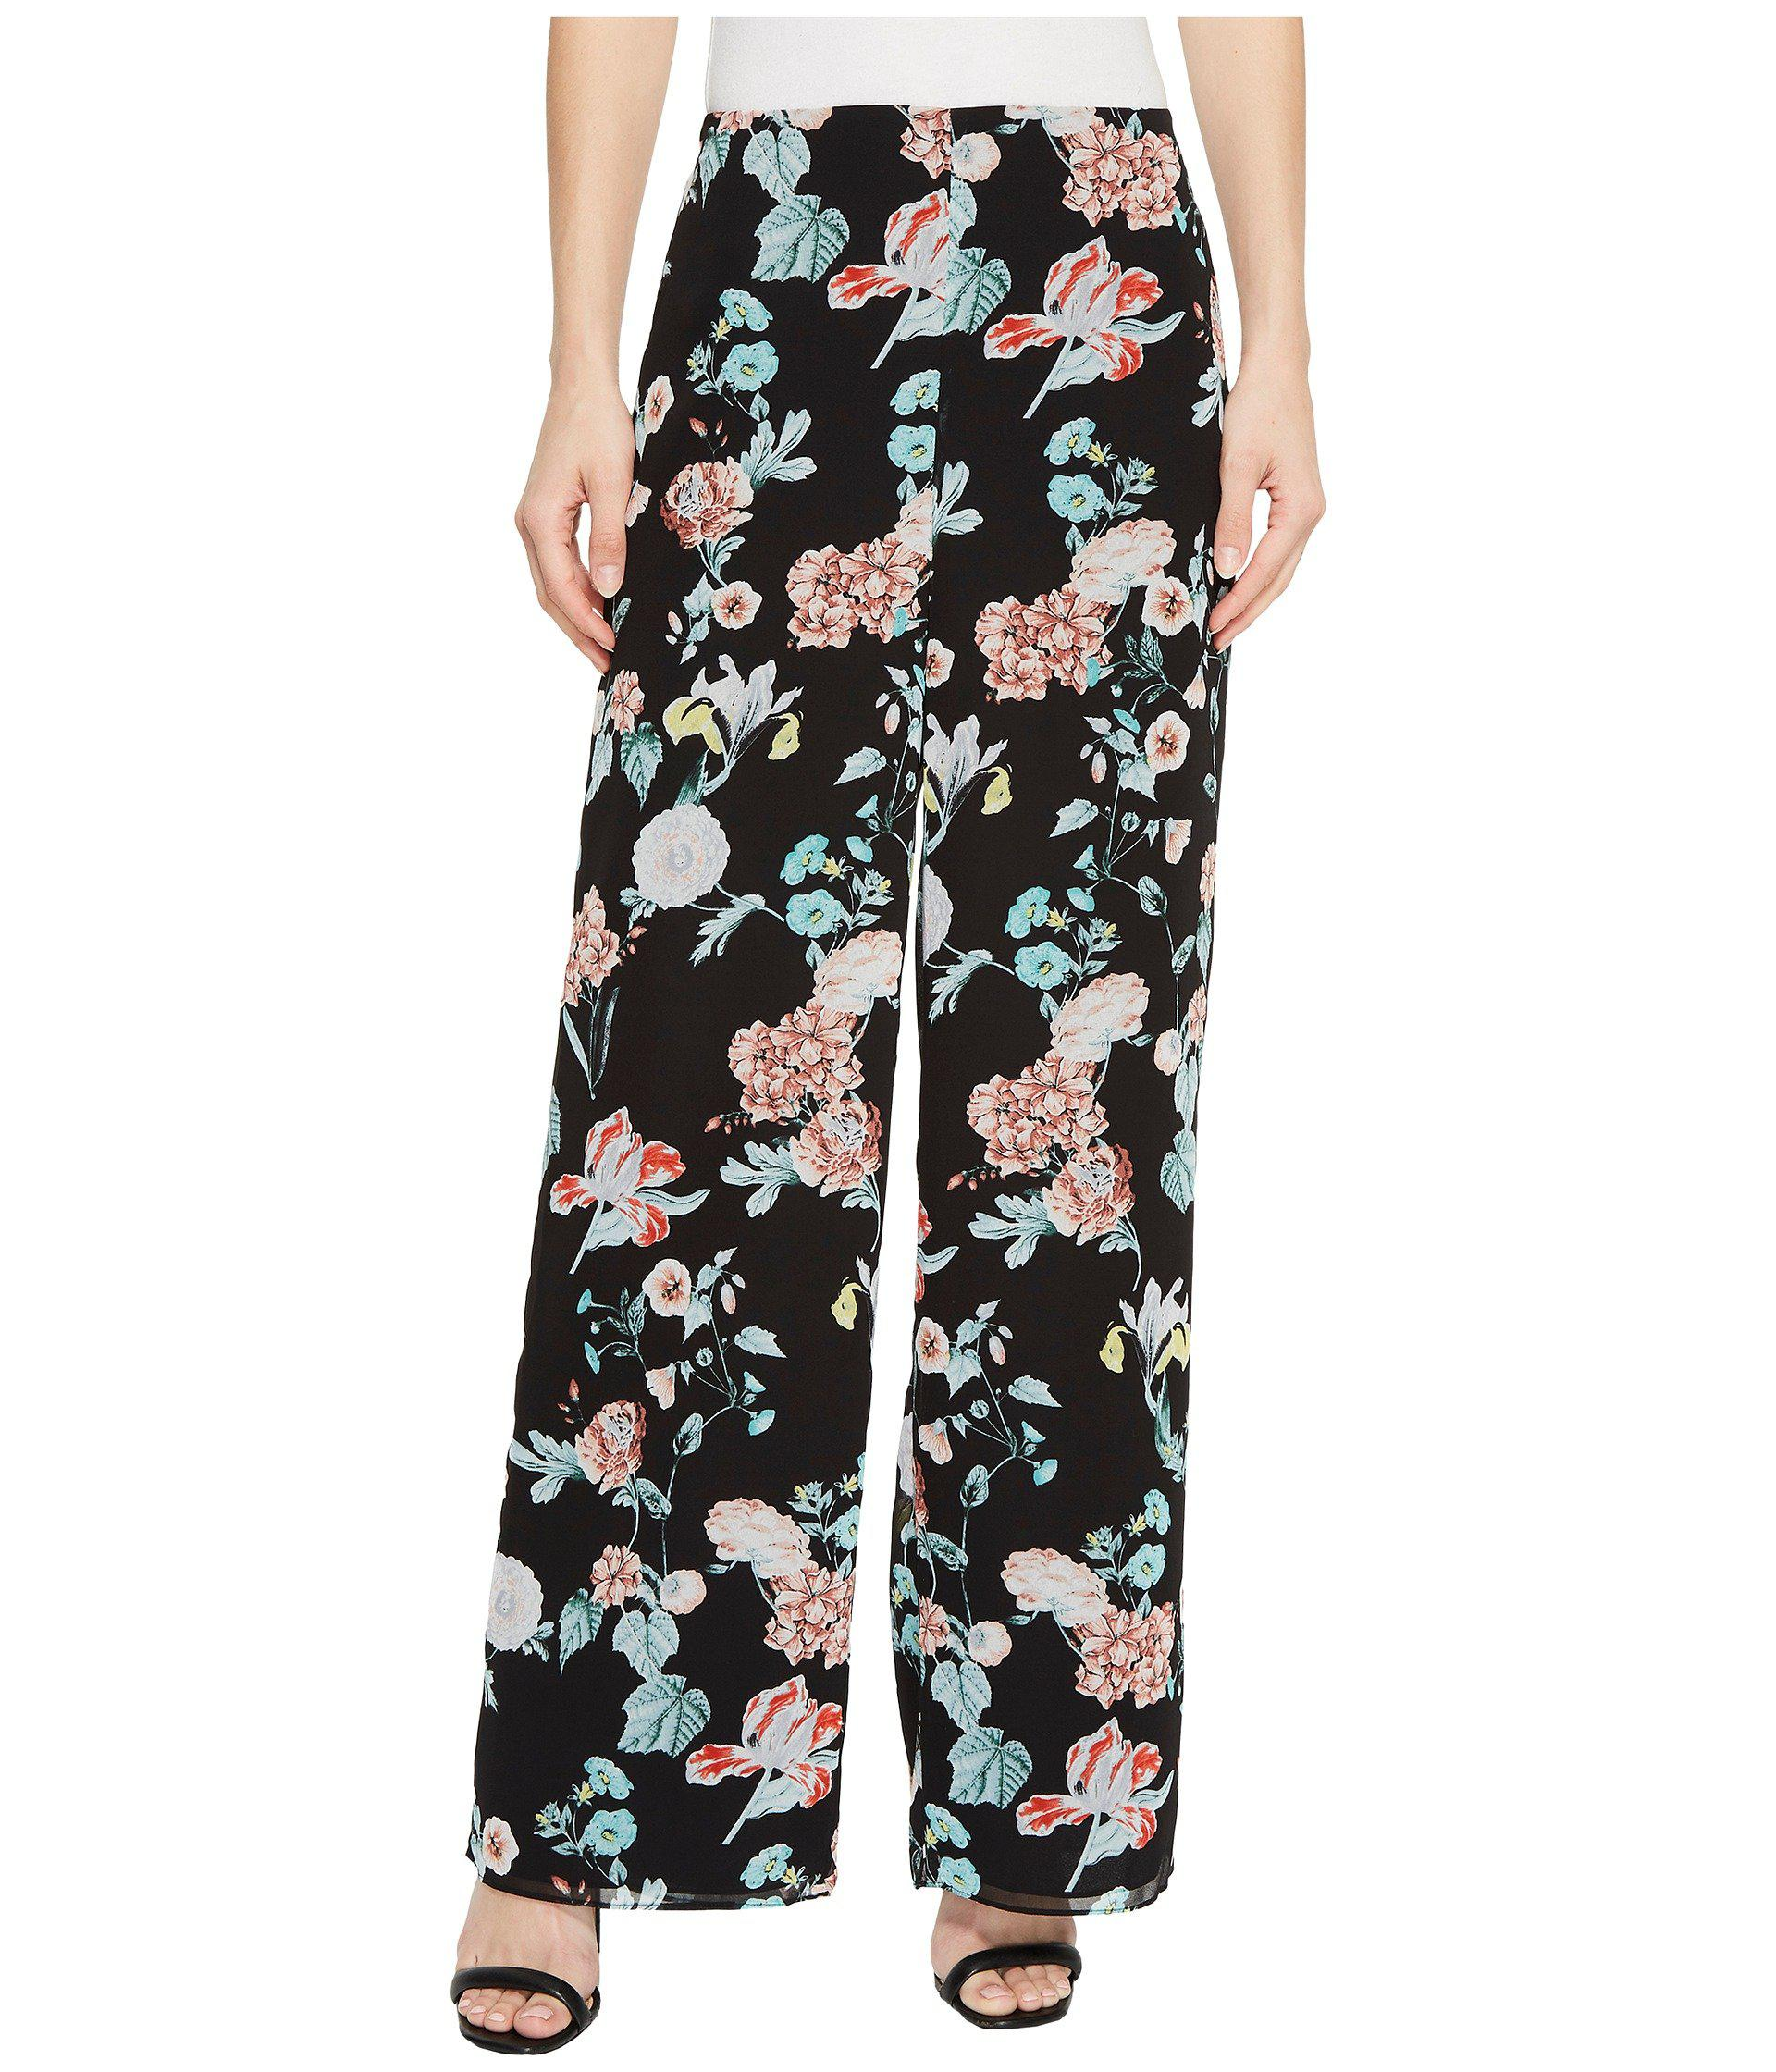 Footaction Vince Camuto Floral Wide-Leg Ruffle Pants Sale Huge Surprise Find Great Cheap Price Deals For Sale Sale Fake Dc6oBsWUfI